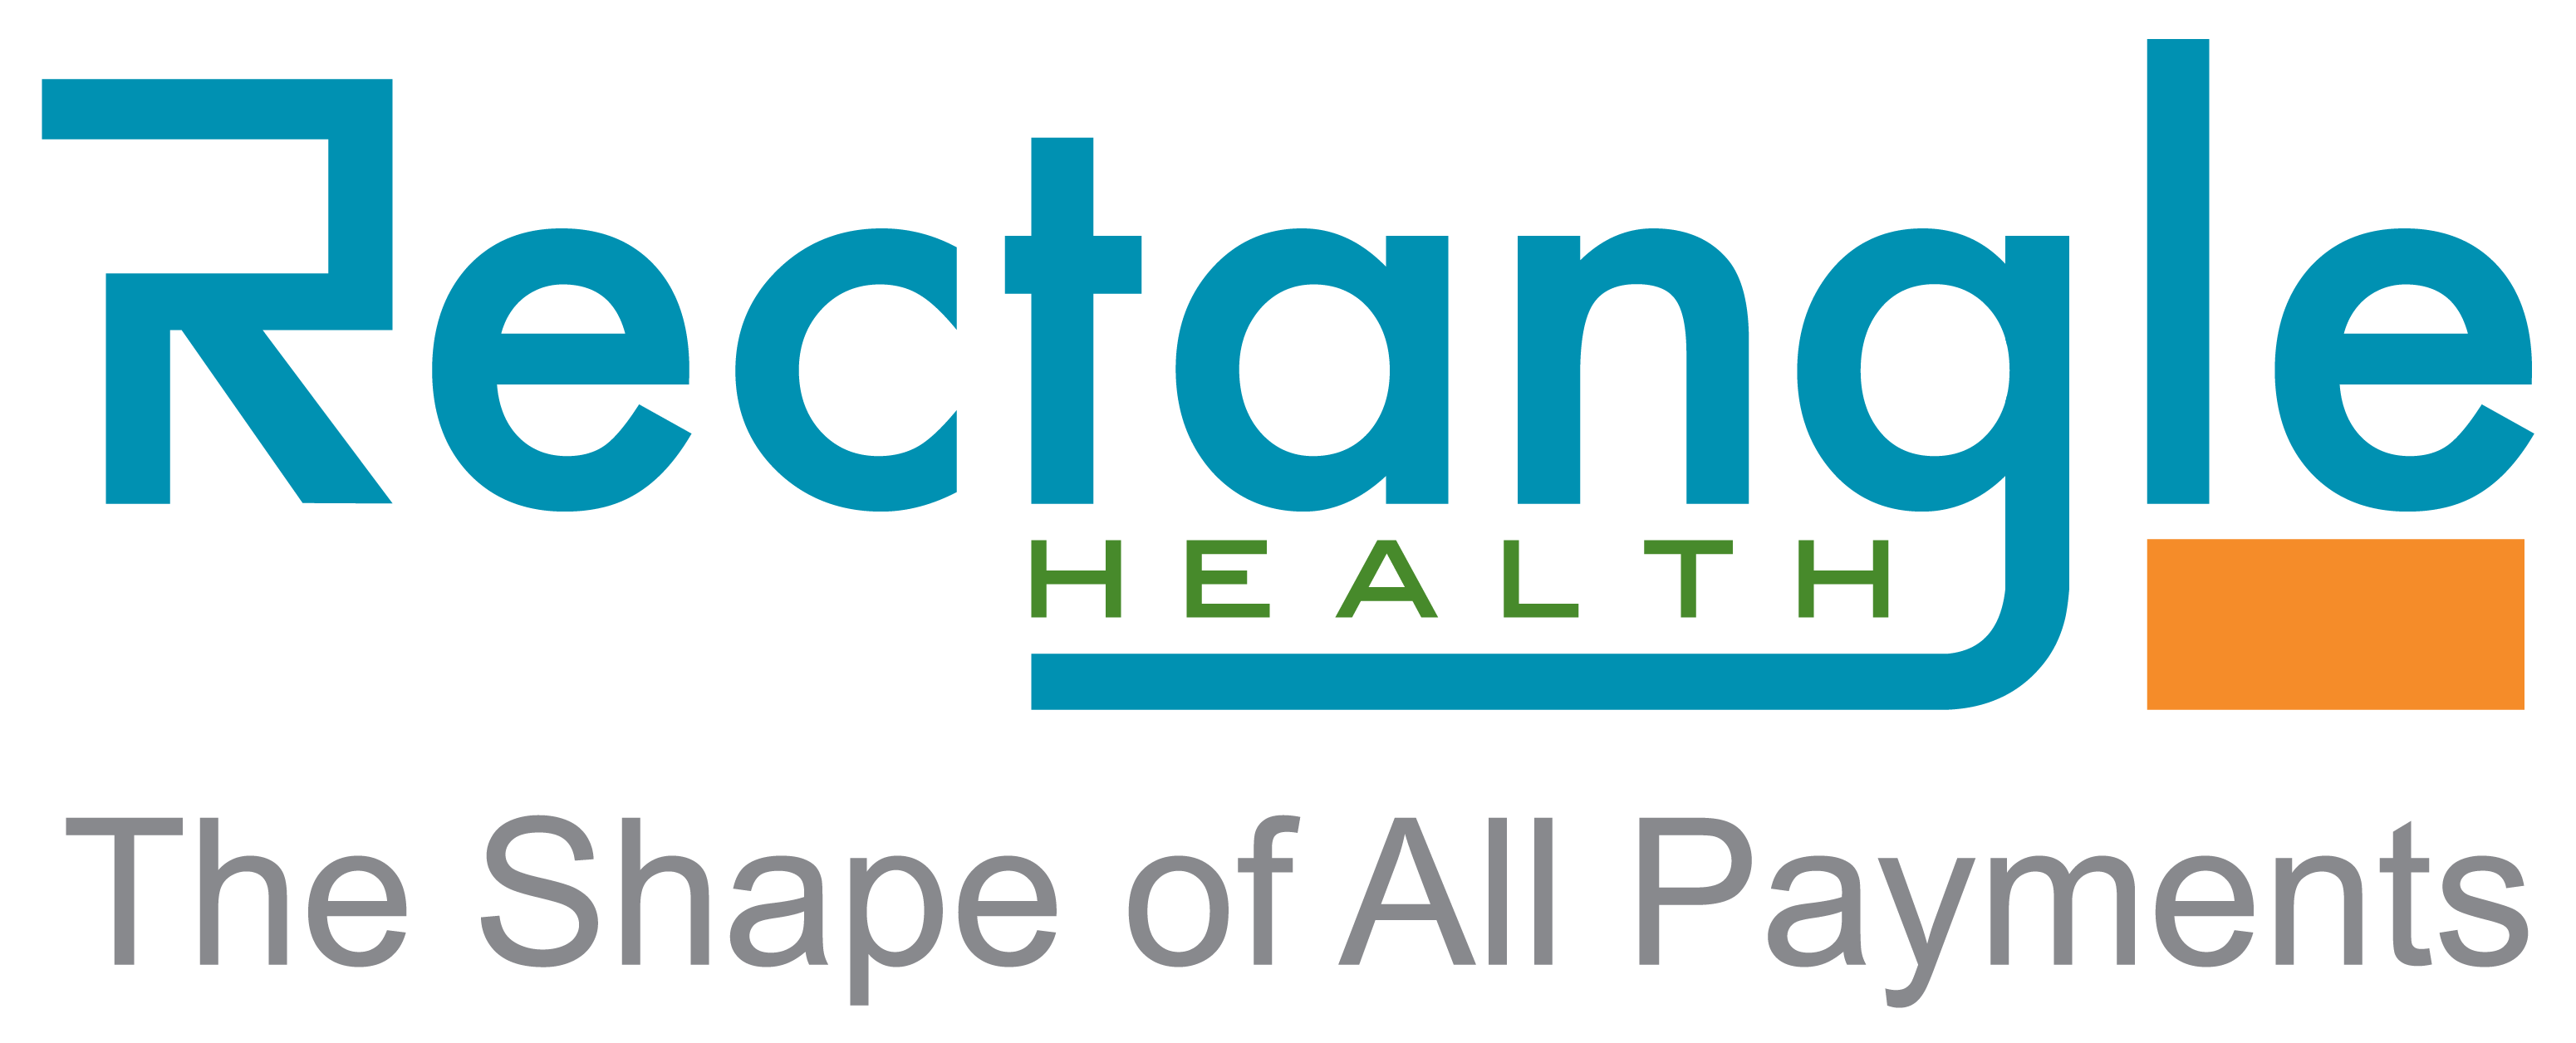 RectangleHealth_Logo_Tagline_FINAL 002